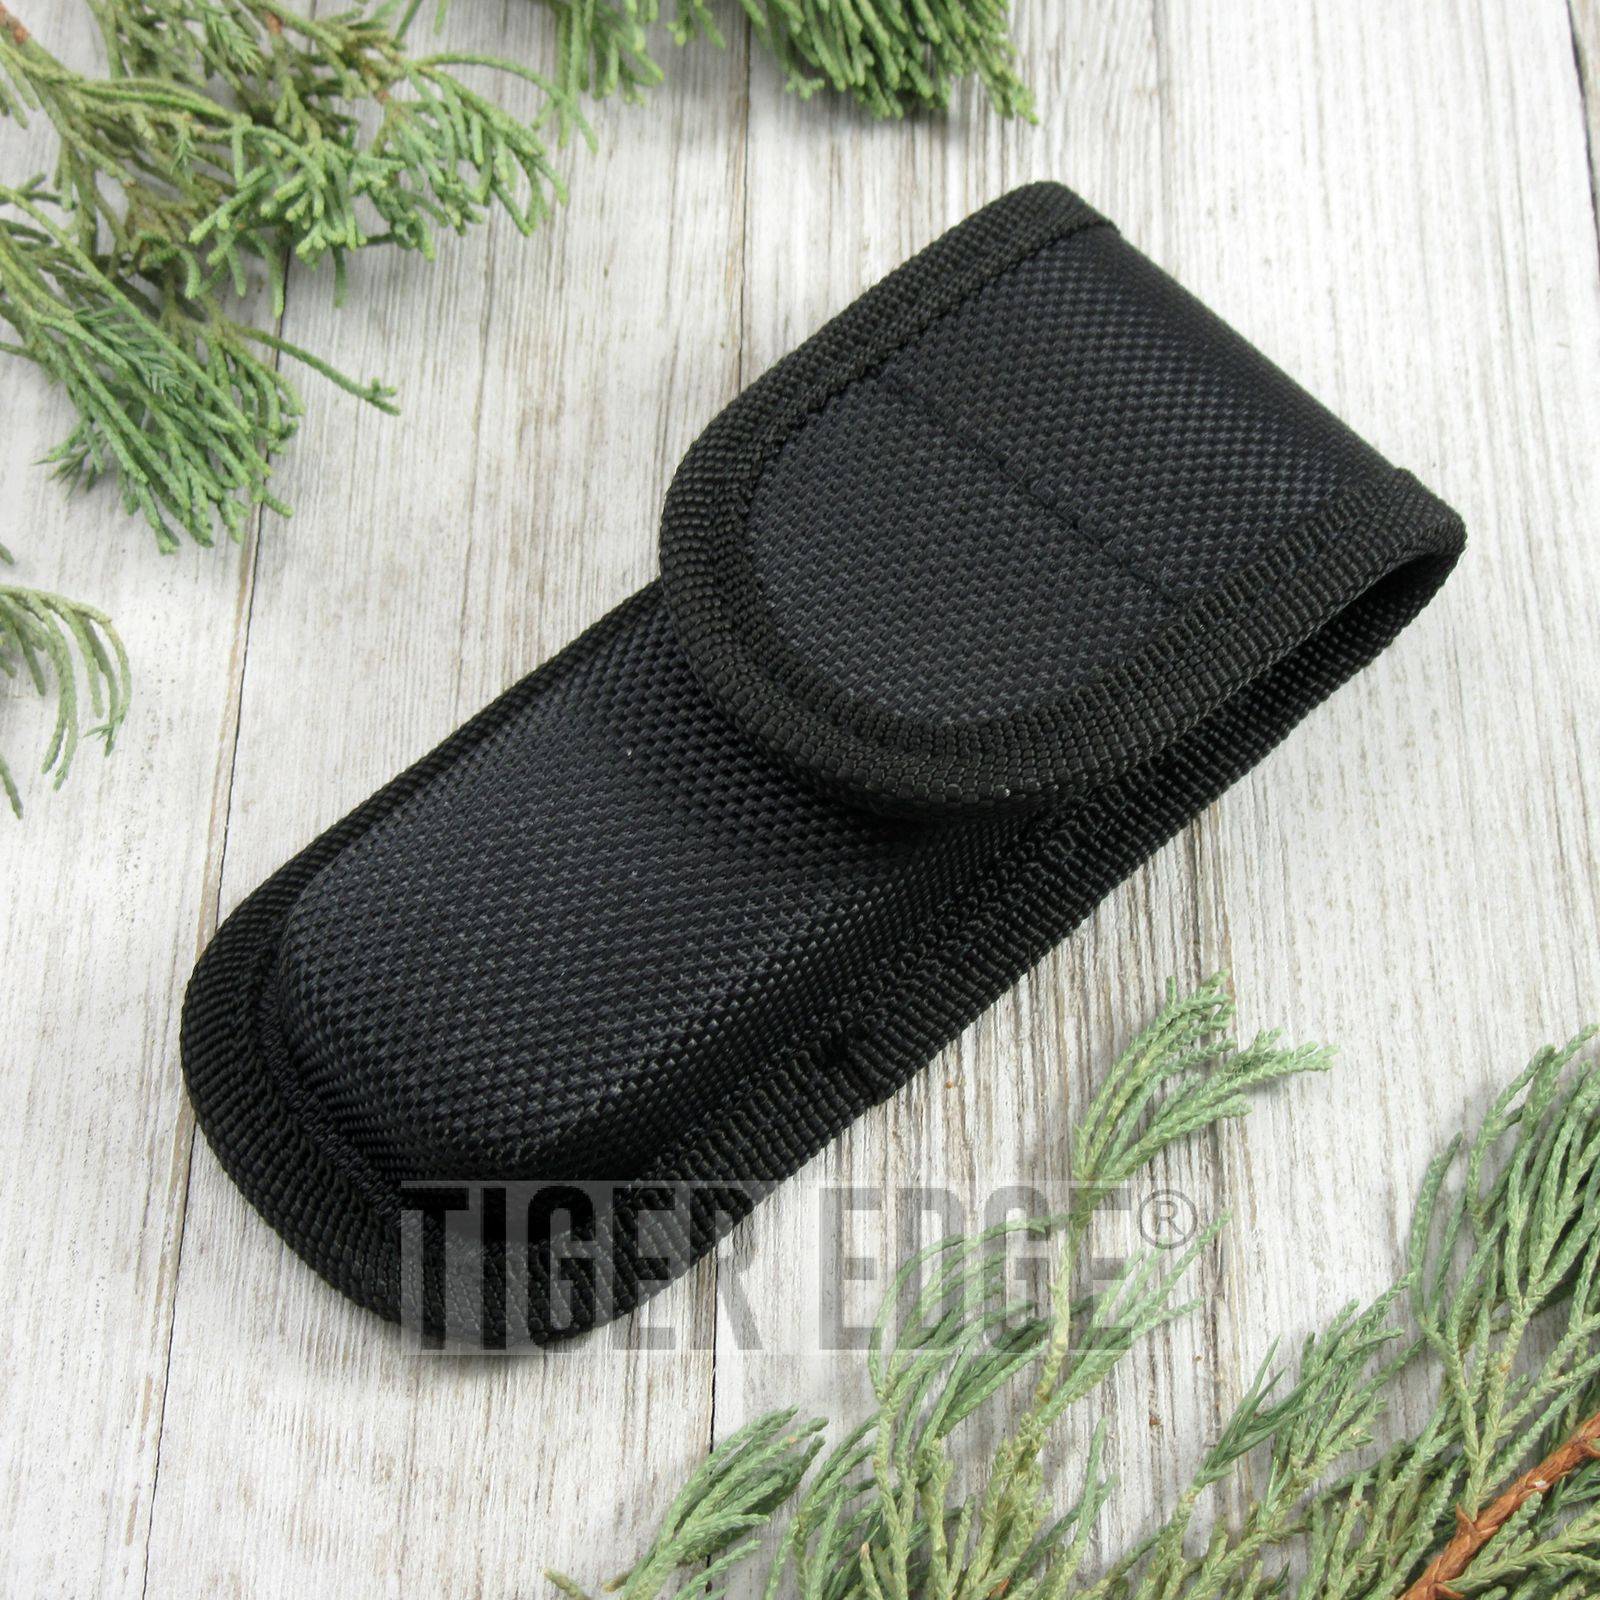 FOLDING KNIFE SHEATH | Black Nylon Tactical Belt Pouch - For Folders up to 4.5""